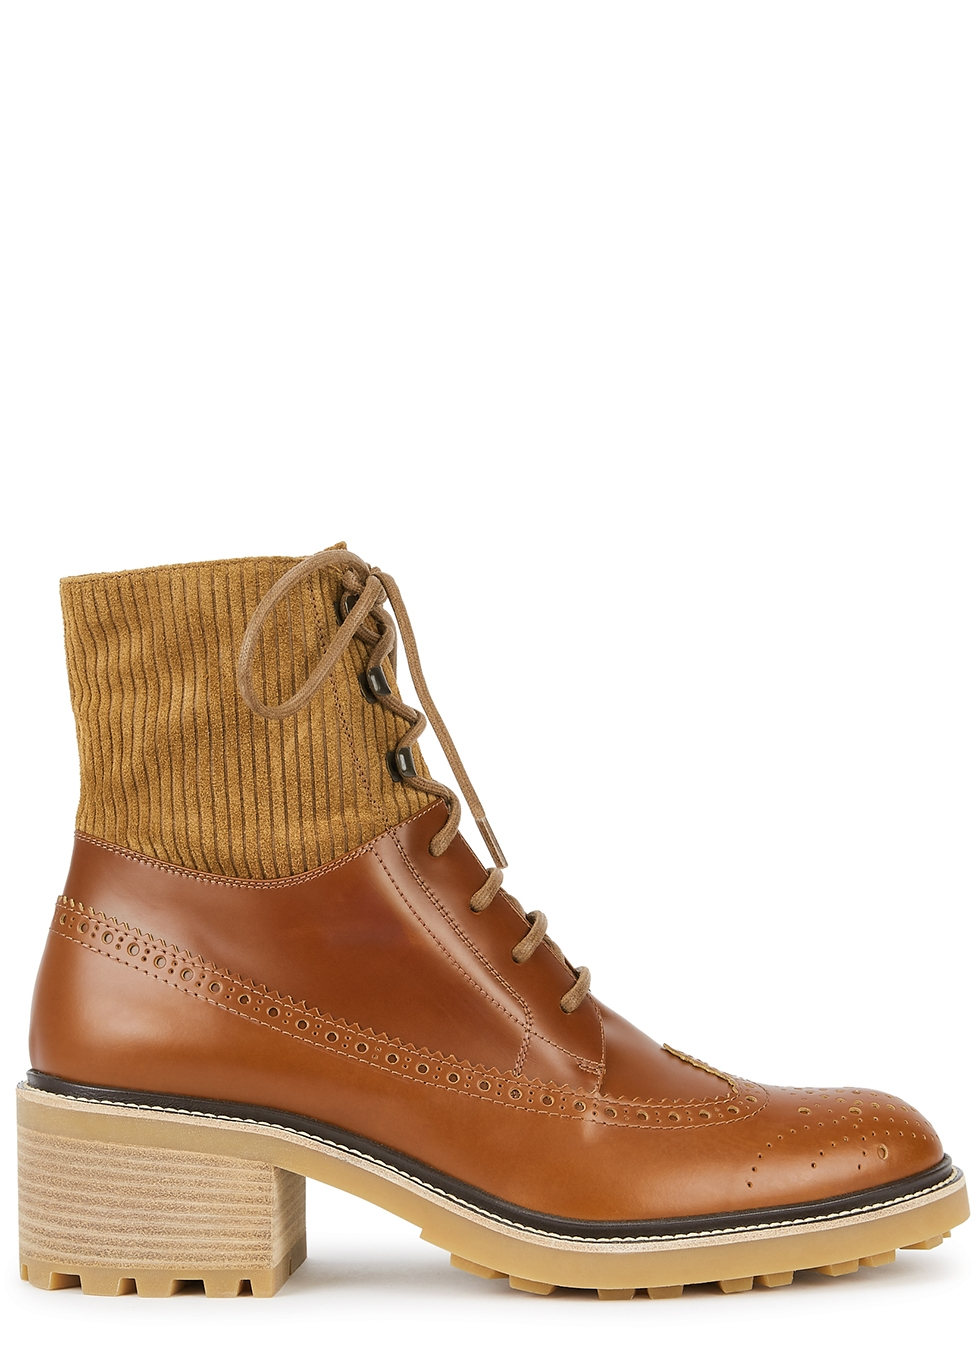 50 brown leather ankle boots